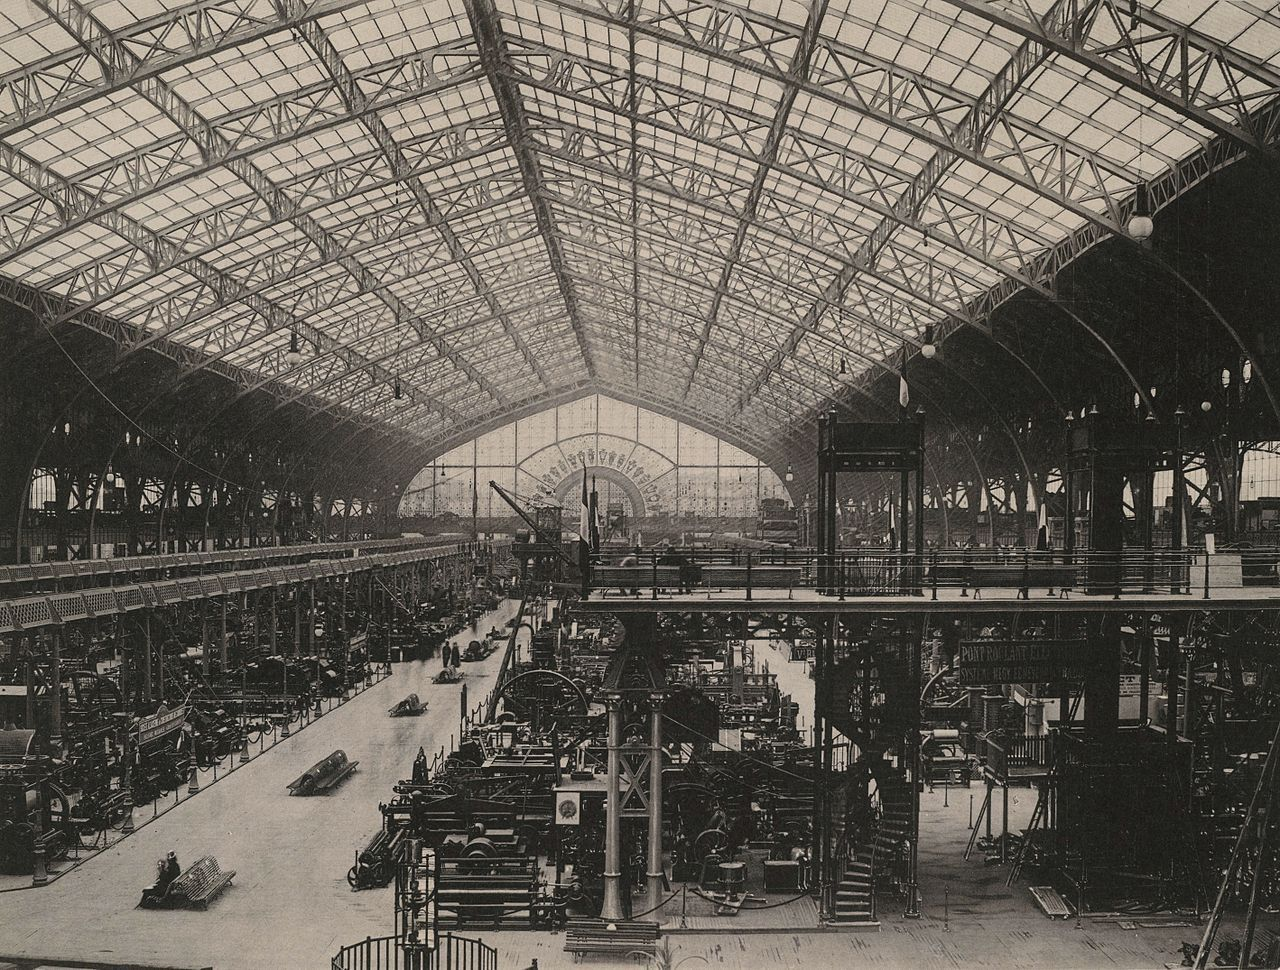 Inside the Galerie des Machines at the Exposition Universelle in 1889, Paris